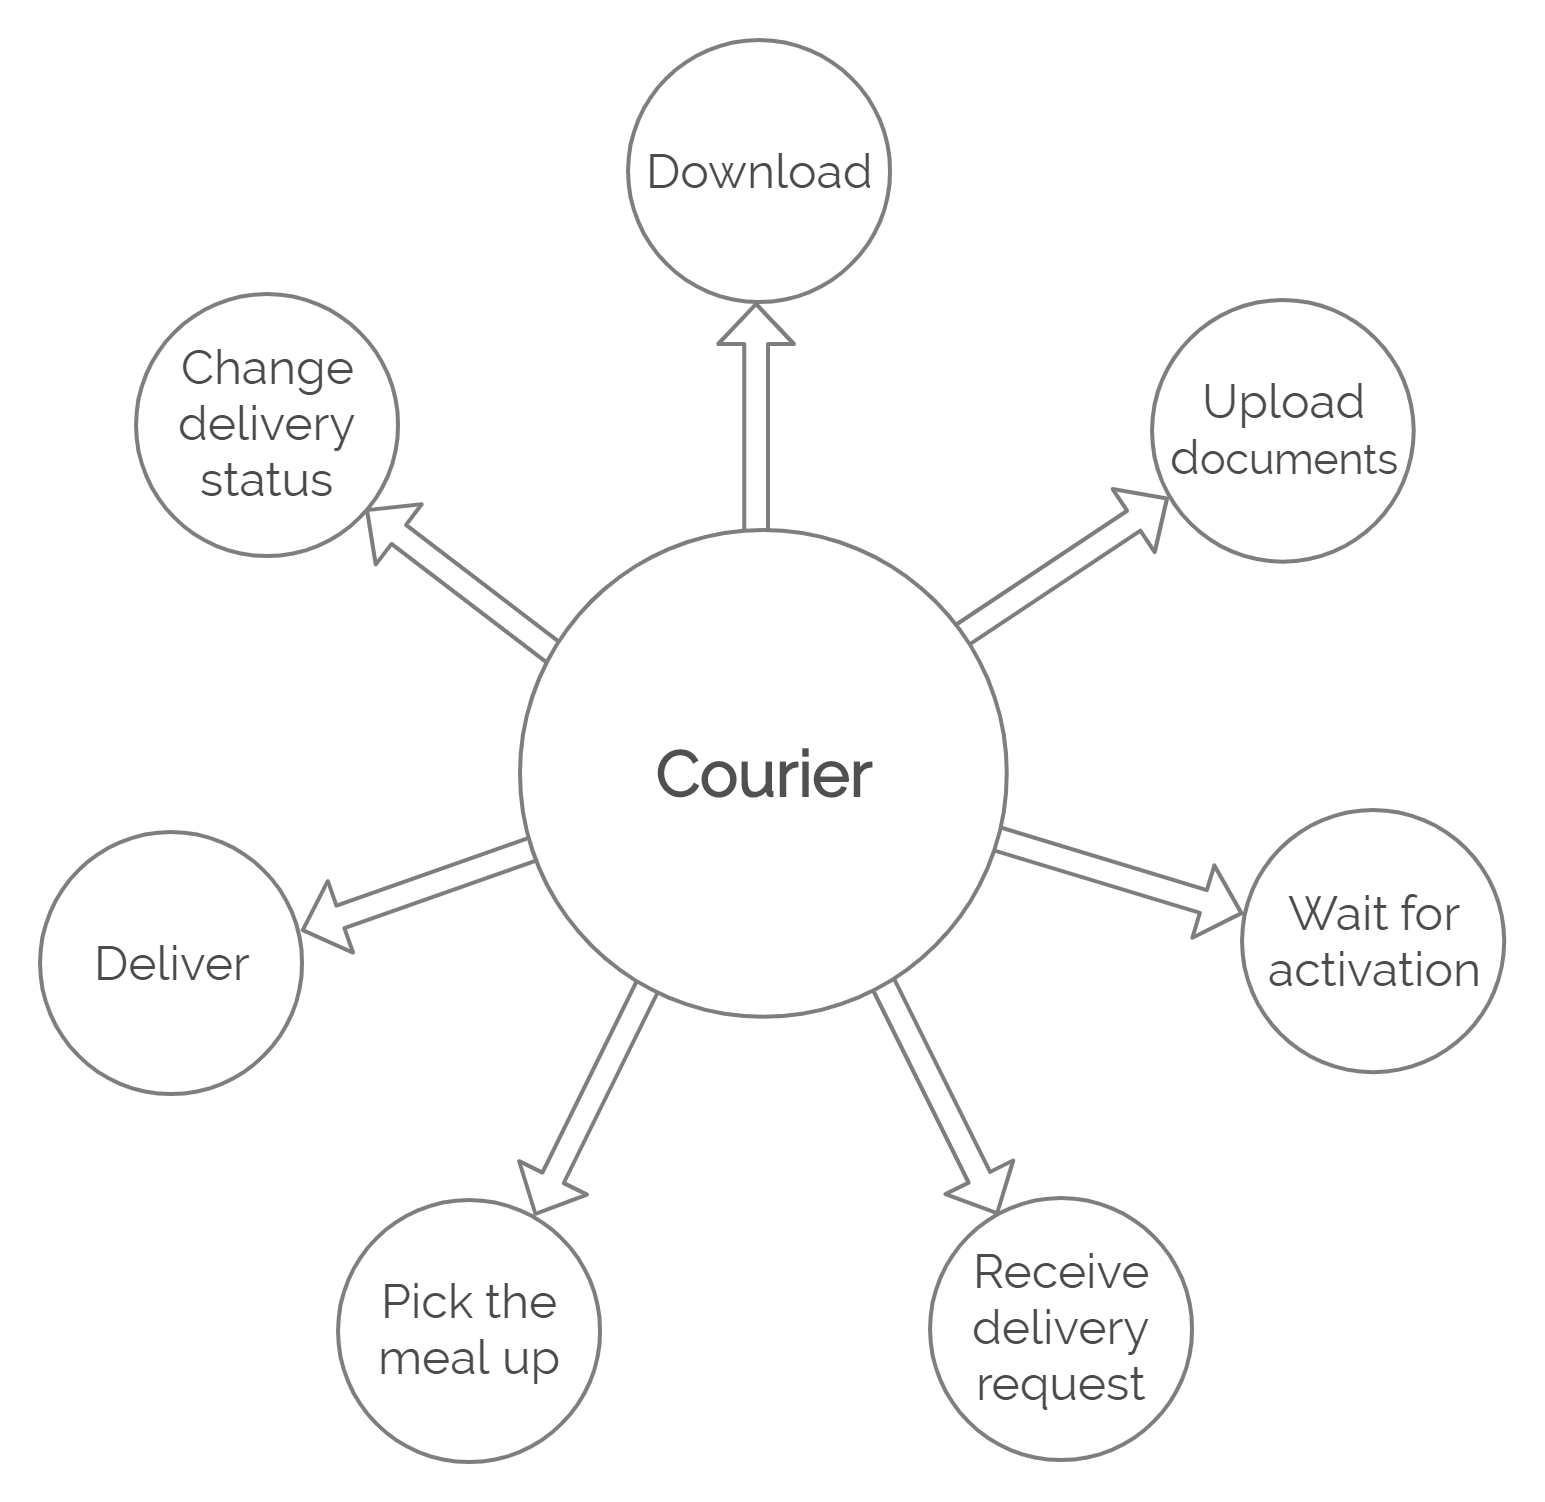 Courier's Actions